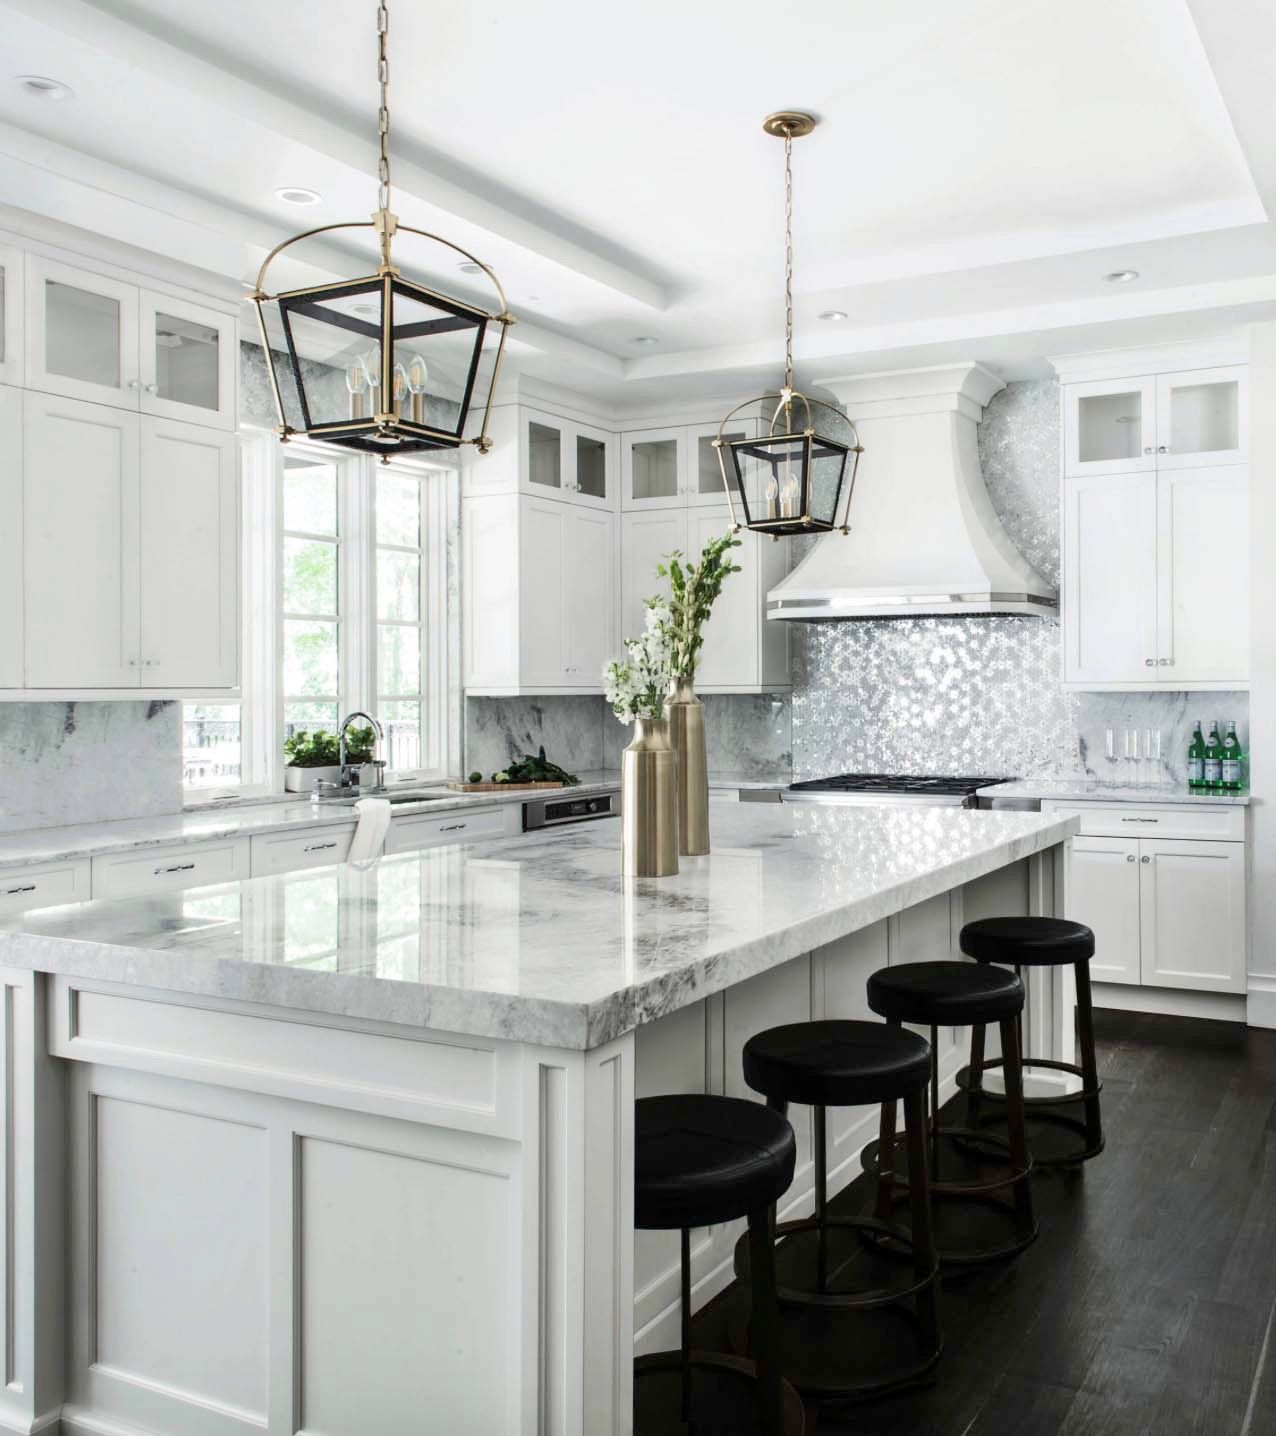 Fitted Kitchen Interior Designs Ideas Kitchen Cabinet: Pin By Marvin Morris On Design I Love